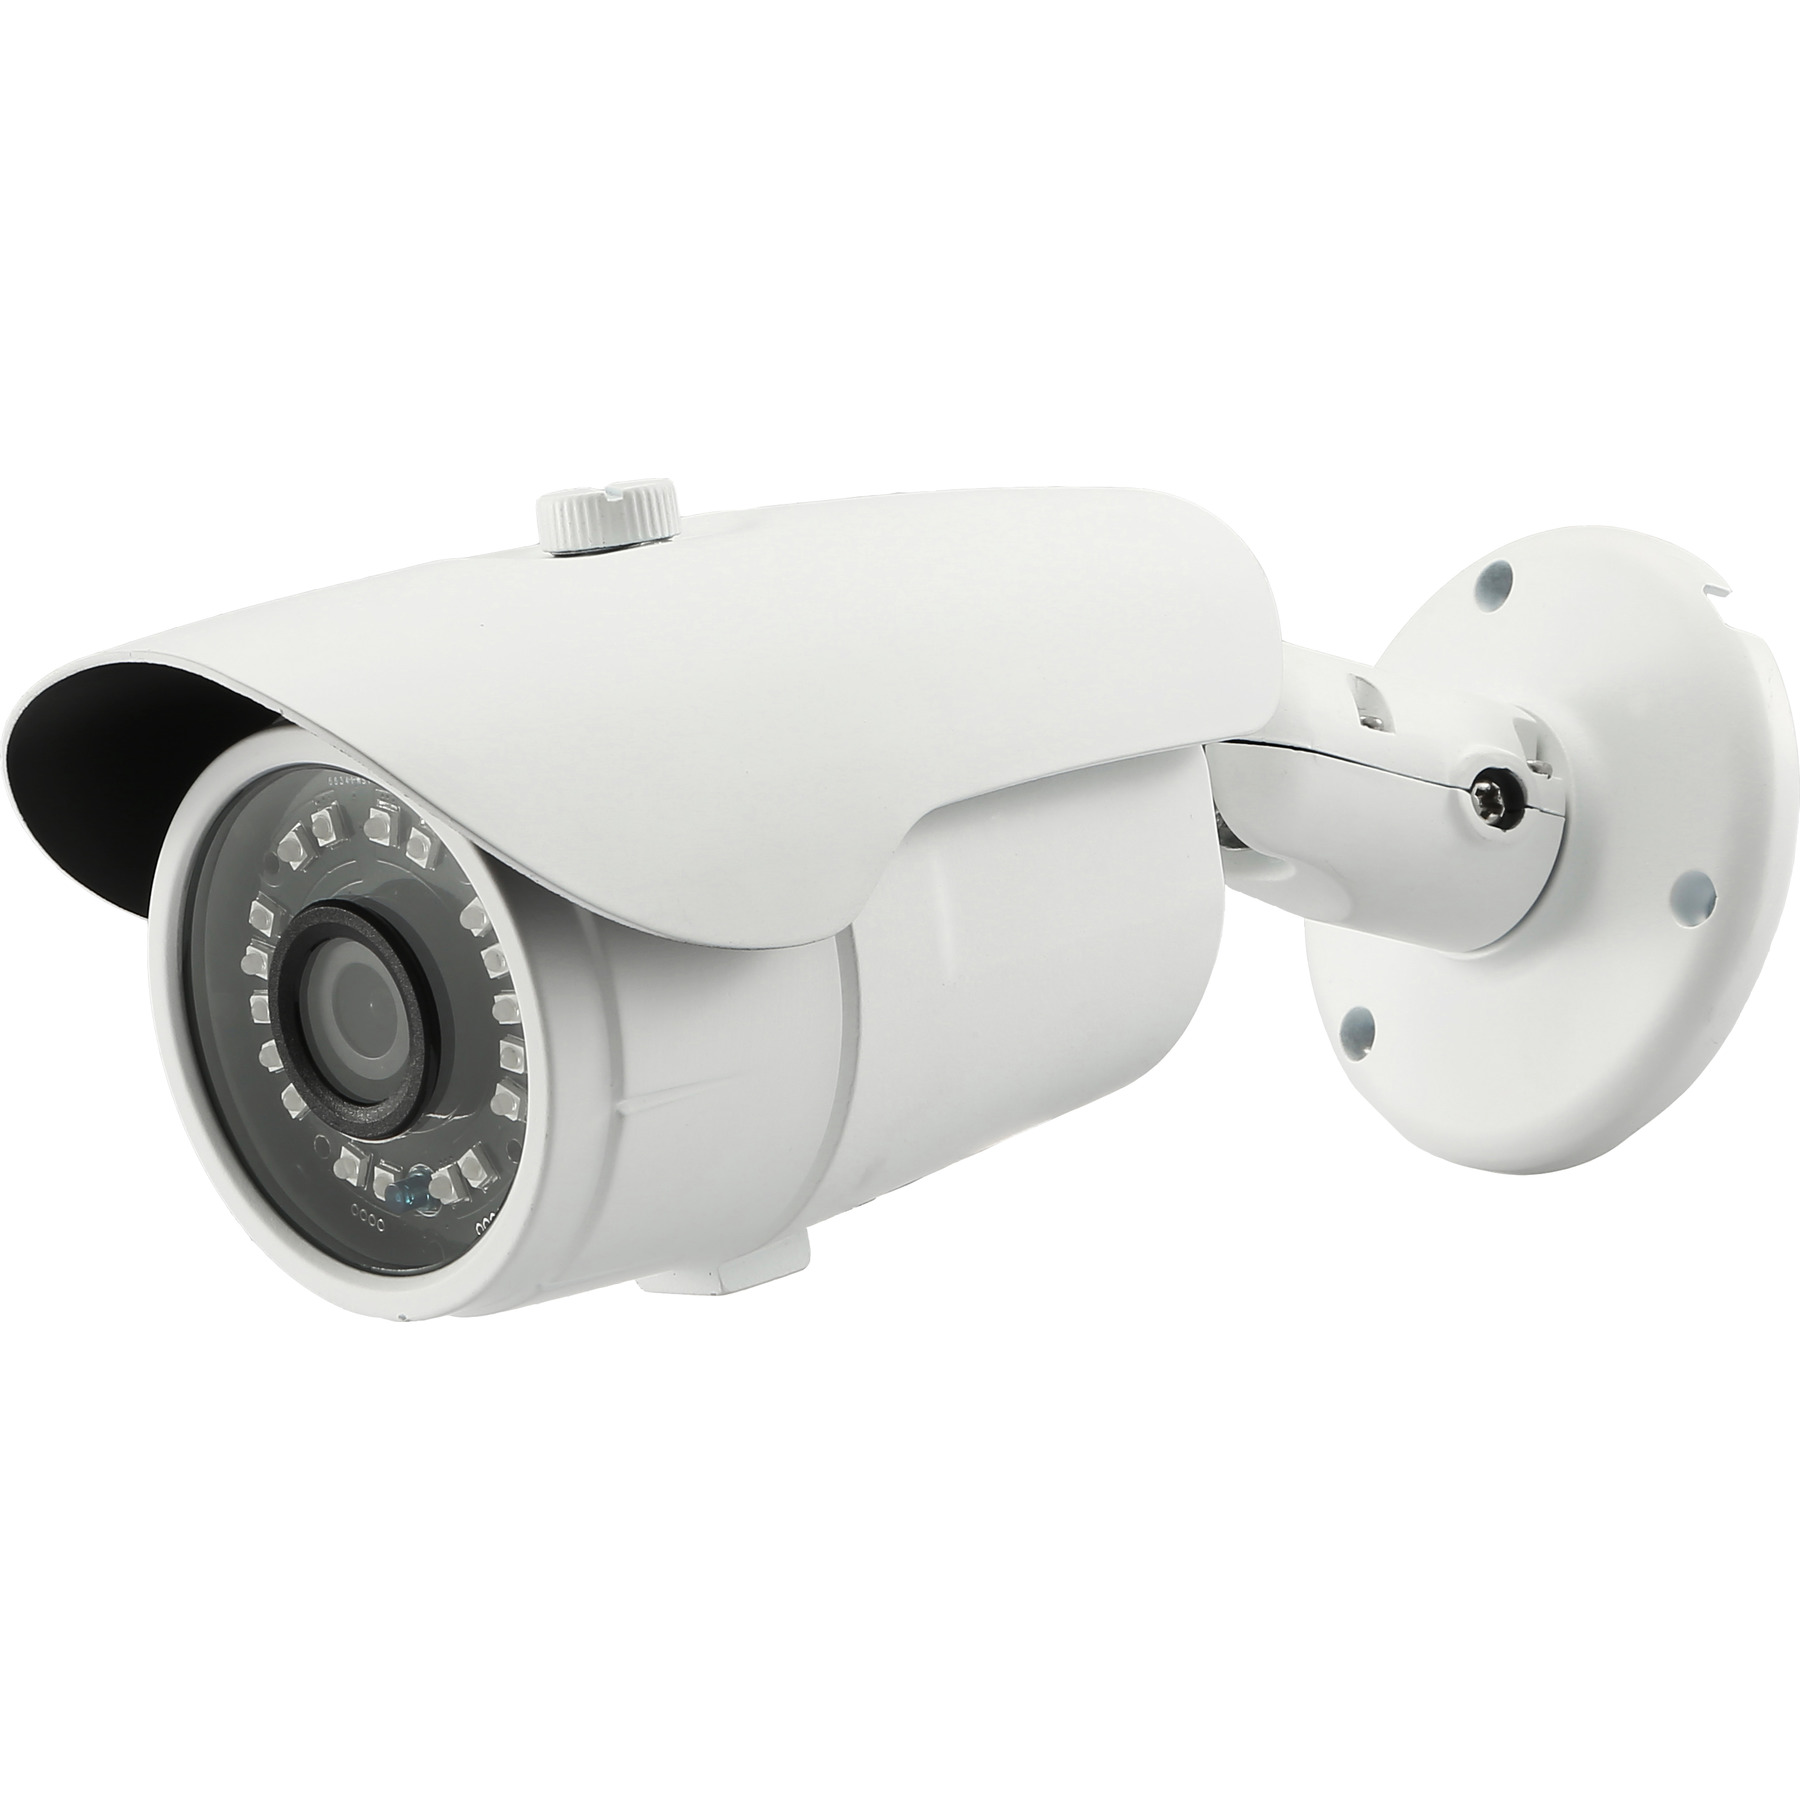 PVCVI-4MP4n1-BT36WH Product Zoom